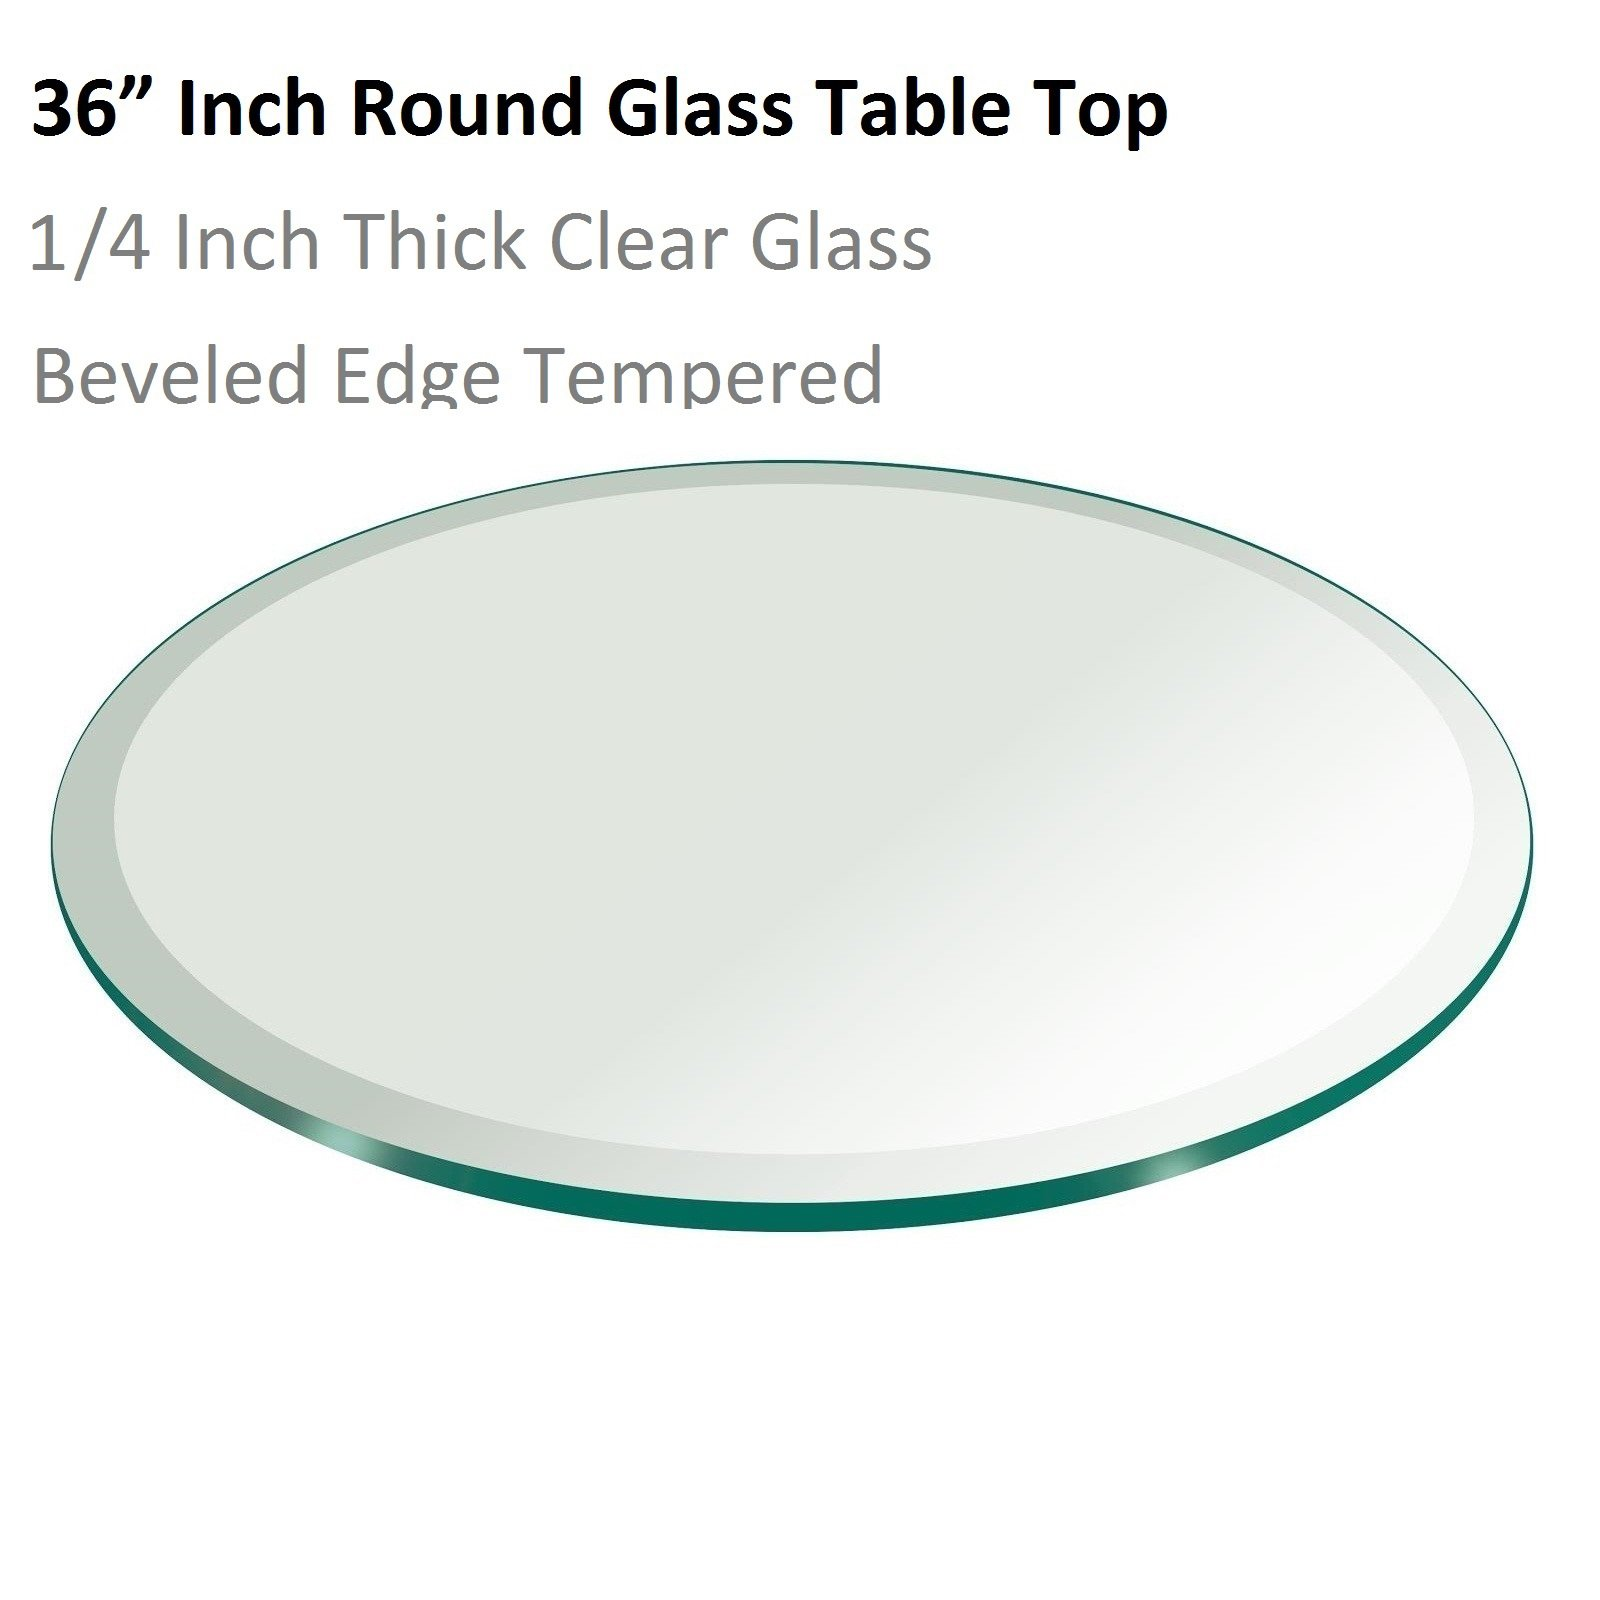 36'' Inch Round Glass Table Top 1/4'' Thick Tempered Beveled Edge by Fab Glass and Mirror by Fab Glass and Mirror